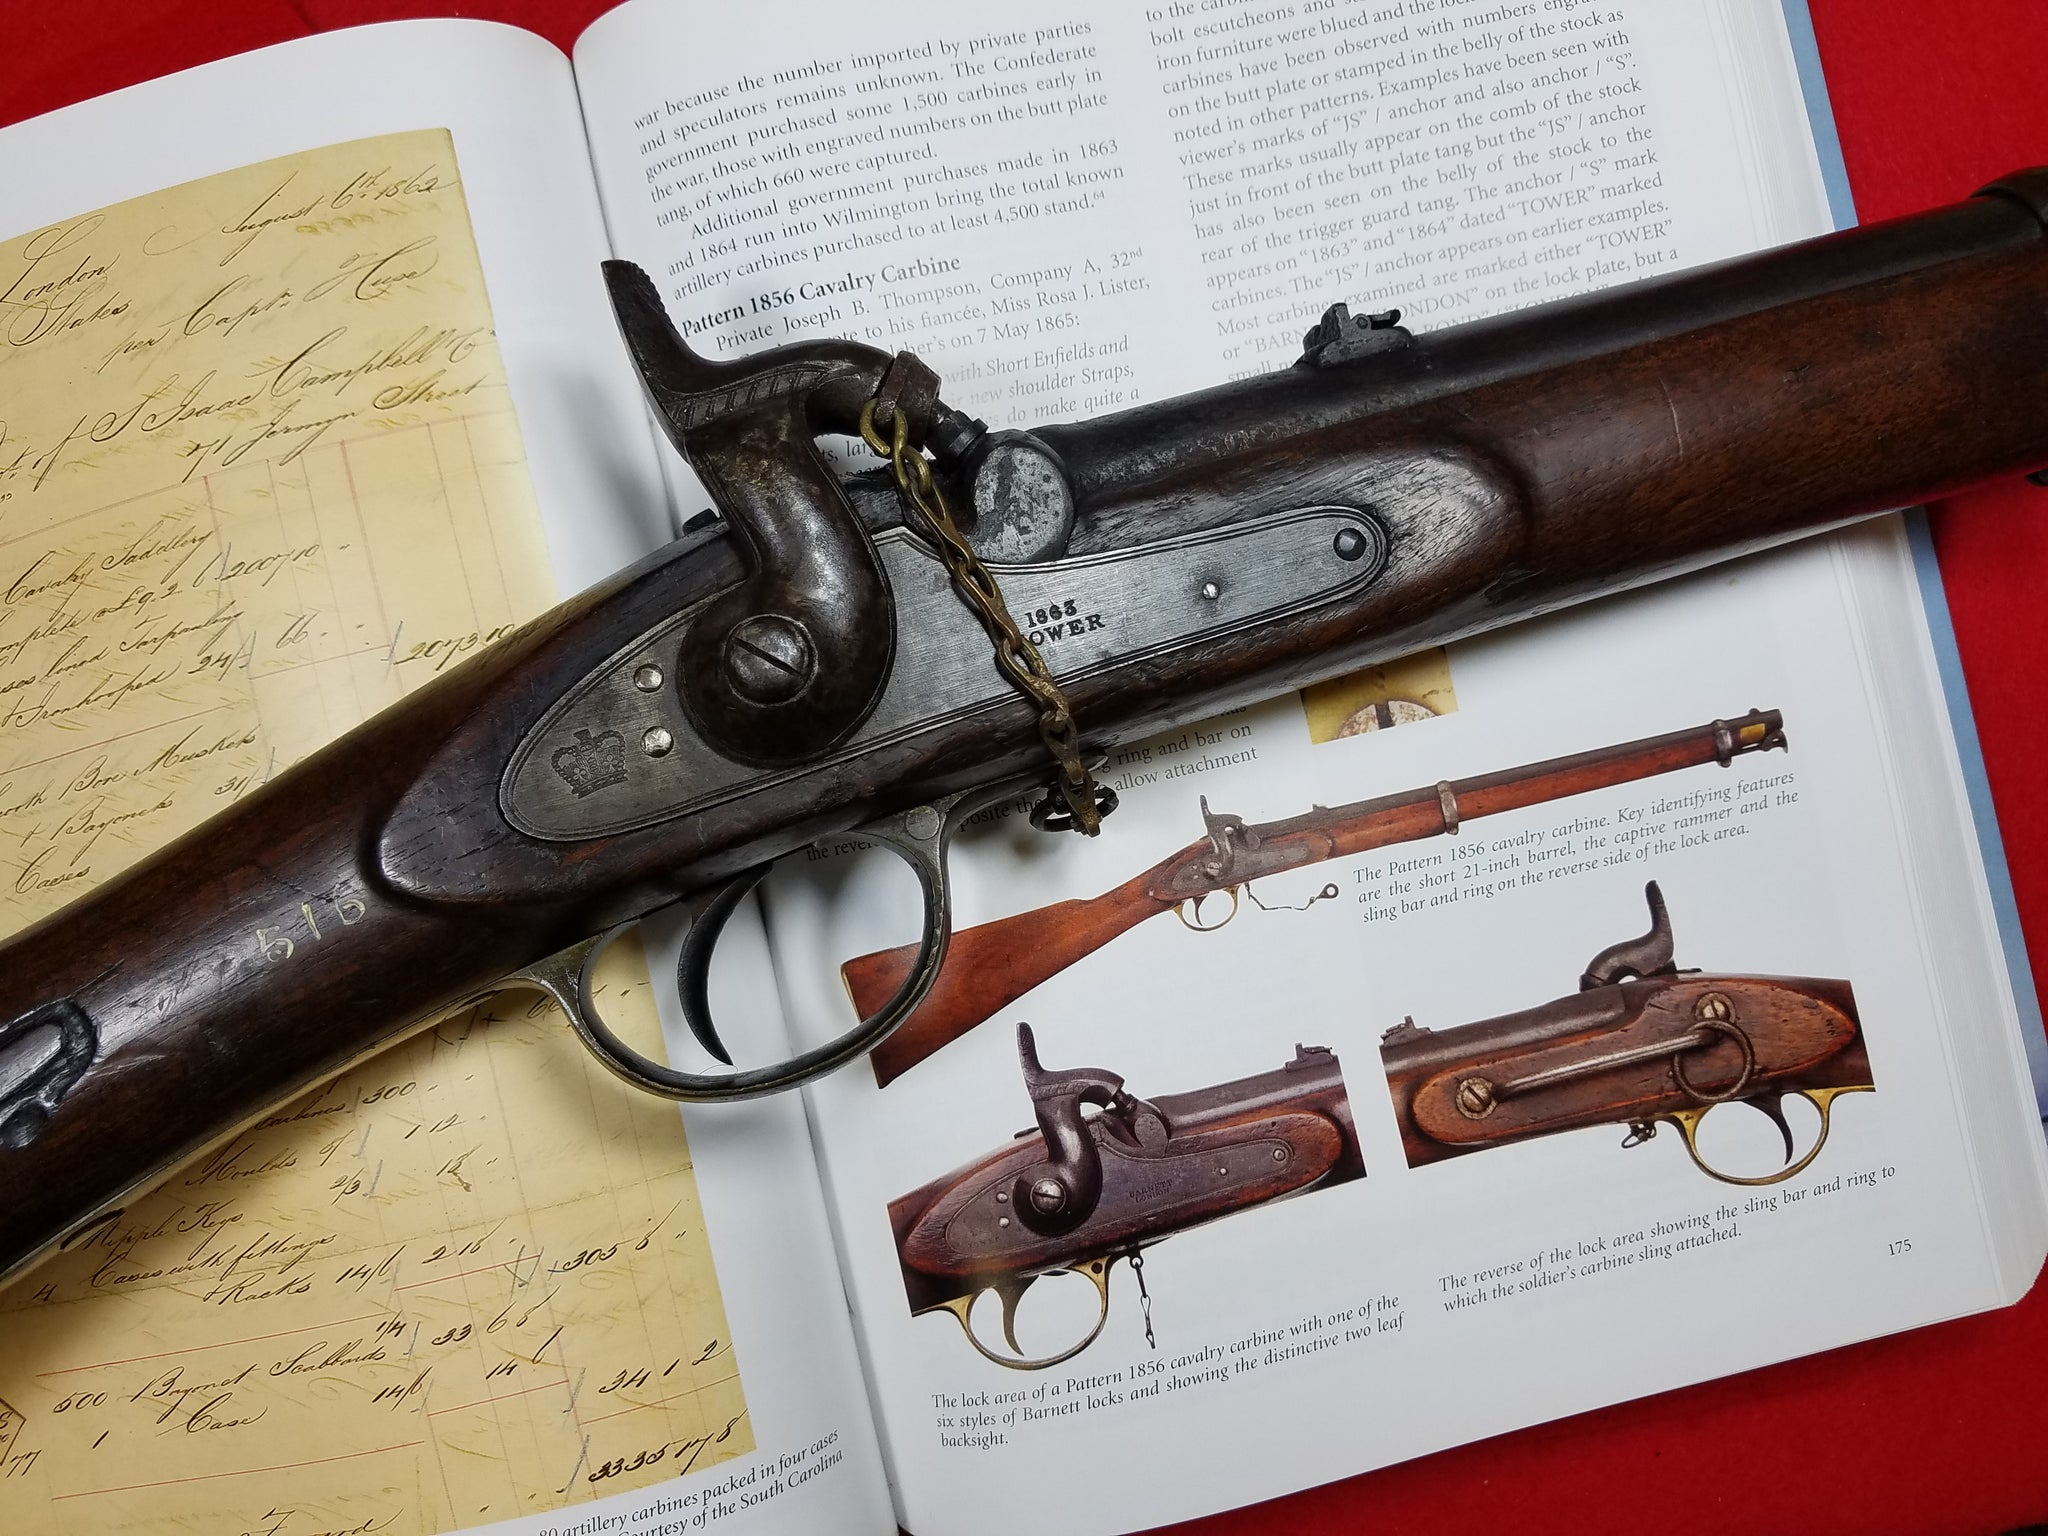 CONFEDERATE TOWER ENFIELD P56 CAVALRY CARBINE – 1st Alabama Cavalry